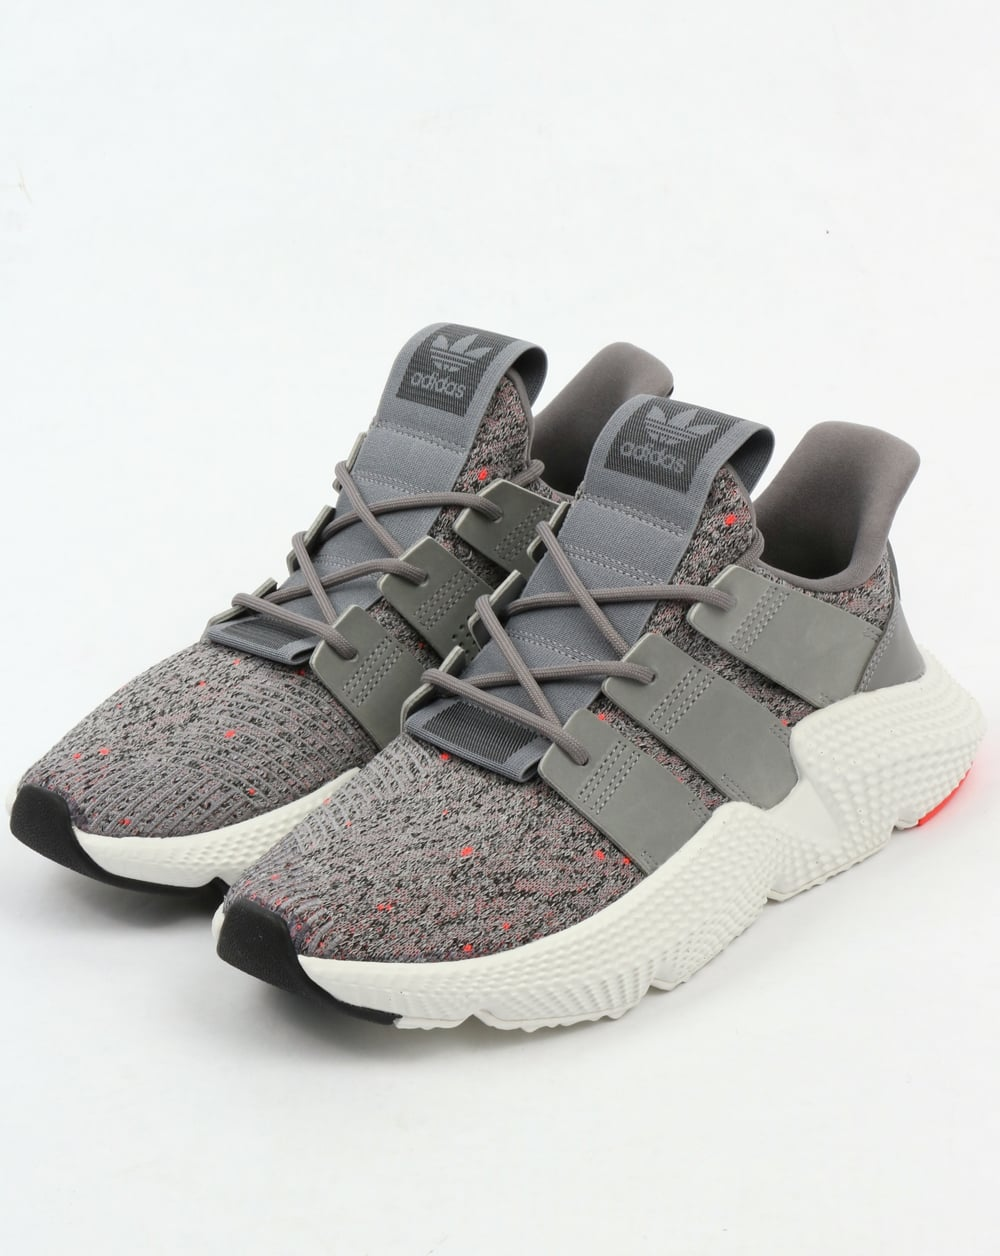 wholesale dealer 5c186 2fb6d adidas Trainers Adidas Prophere Trainers GreyWhite